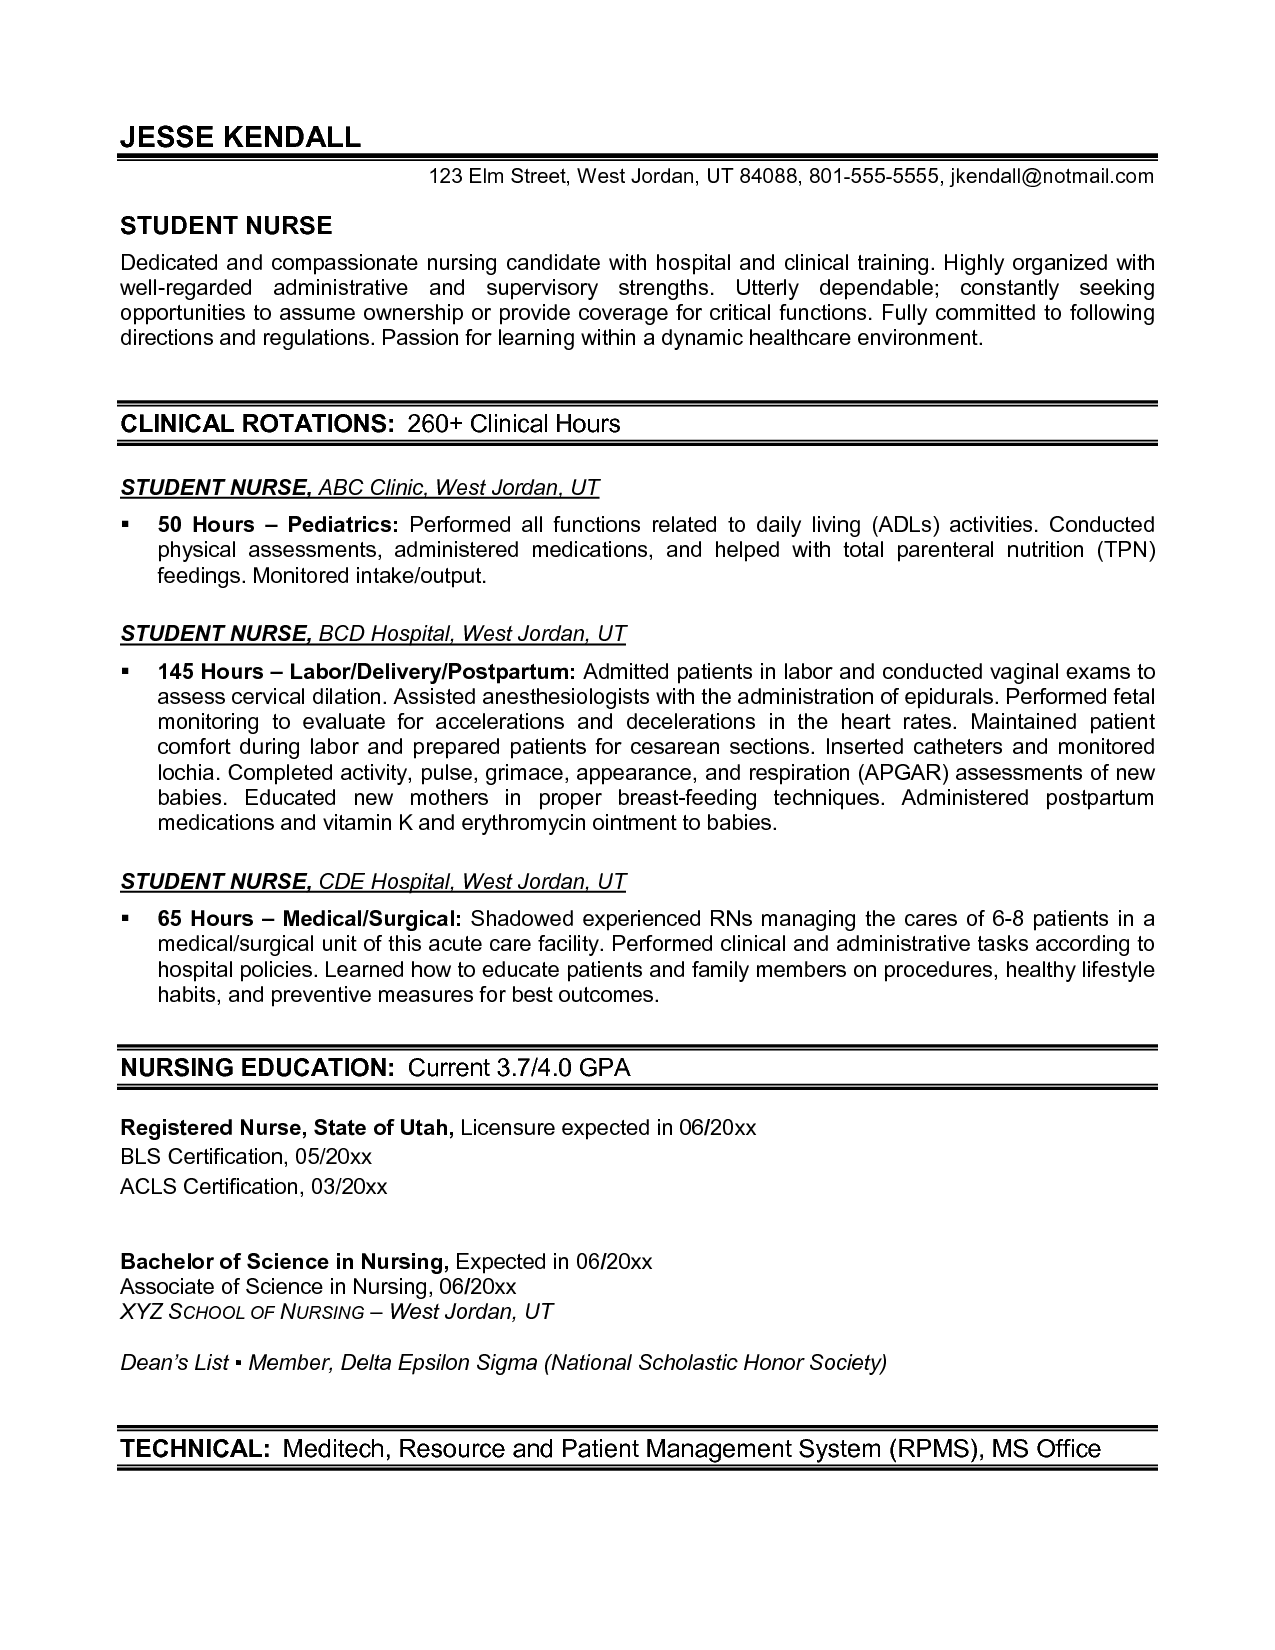 Resume Education Example Amusing Resume Template Nursing  Nursing  Pinterest  Nursing Resume Design Inspiration